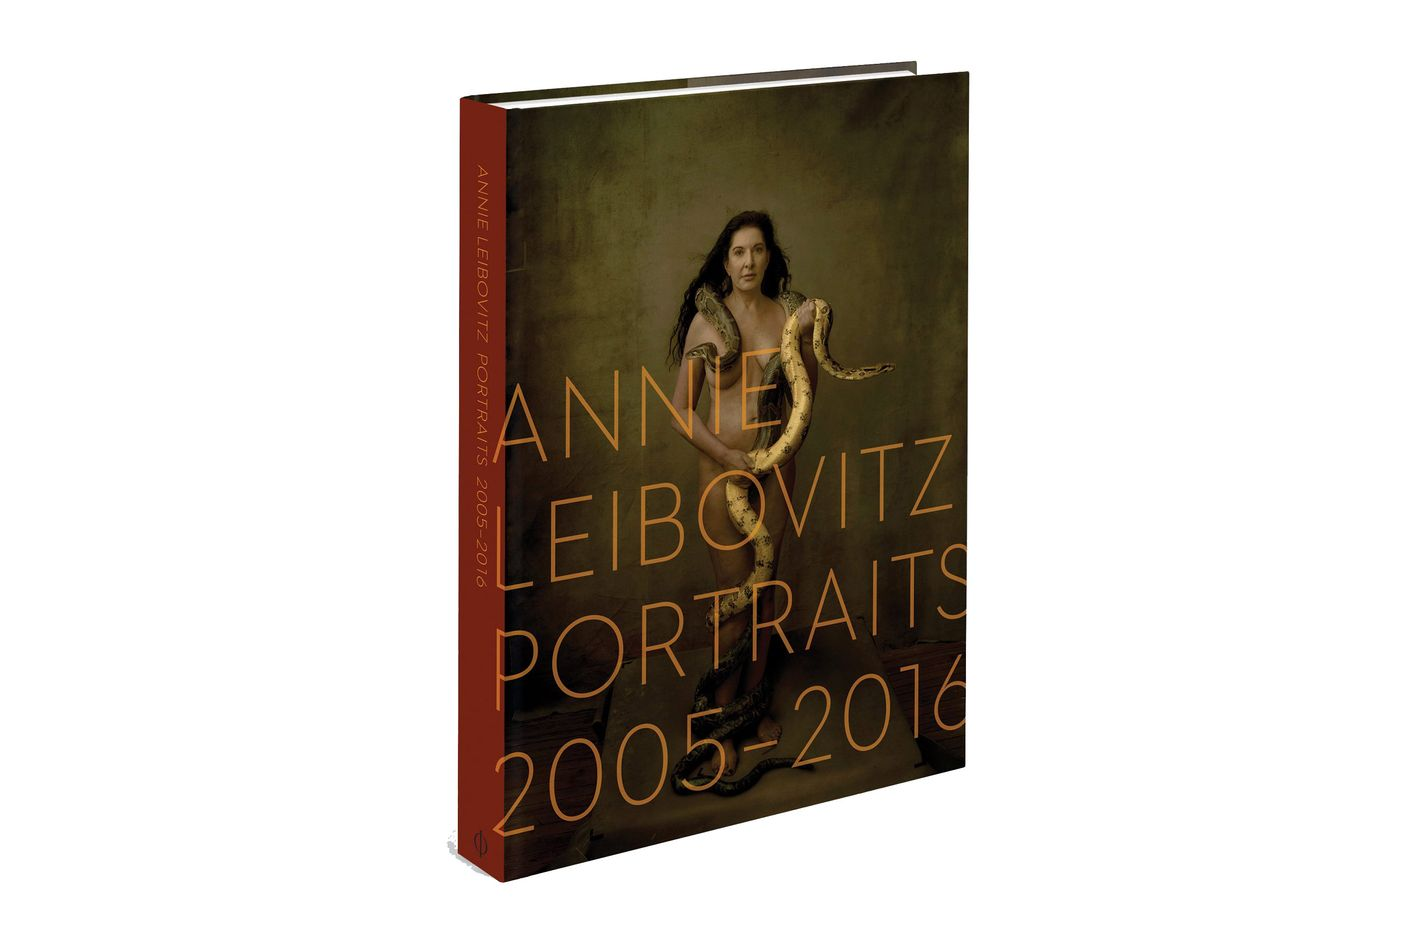 Best coffee table books to give 2017 annie leibovitz portraits 2005 2016 geotapseo Images